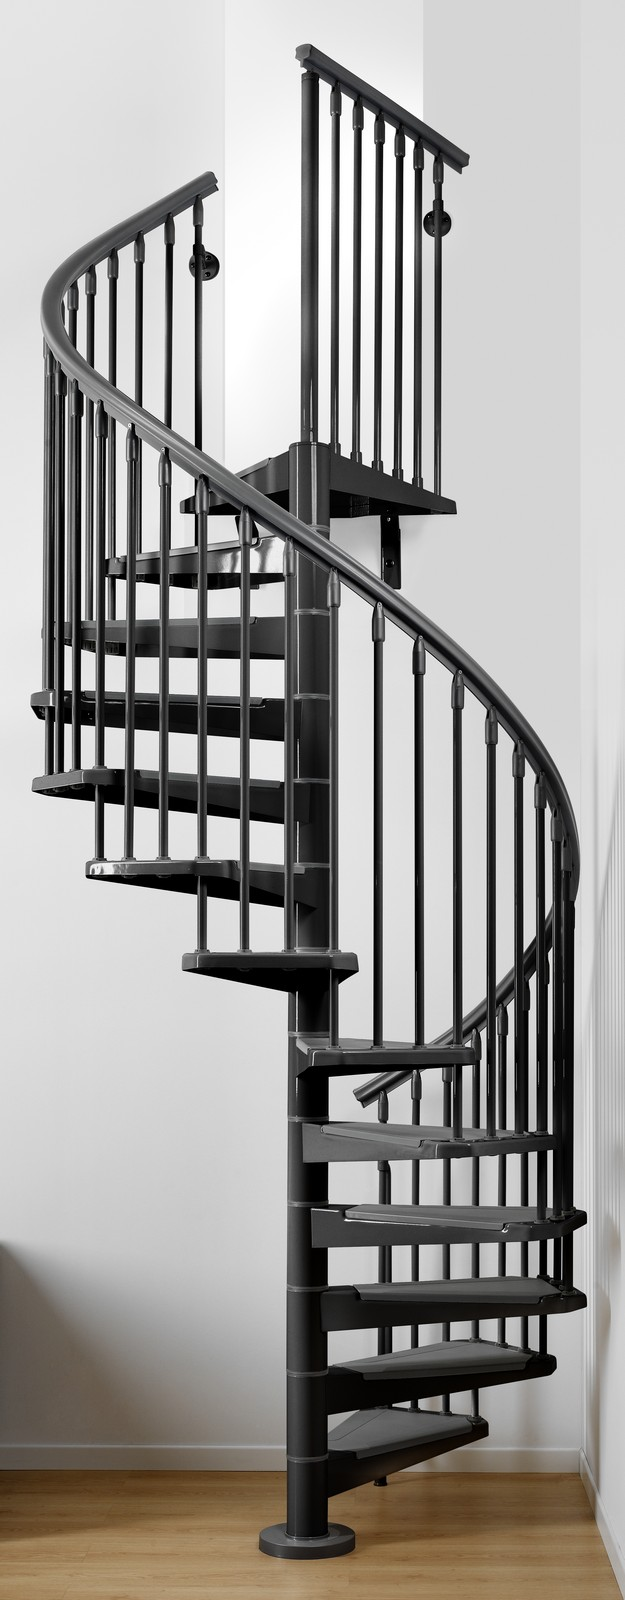 Eureka spiral staircase metal steel and wood spiral for Square spiral staircase plans hall